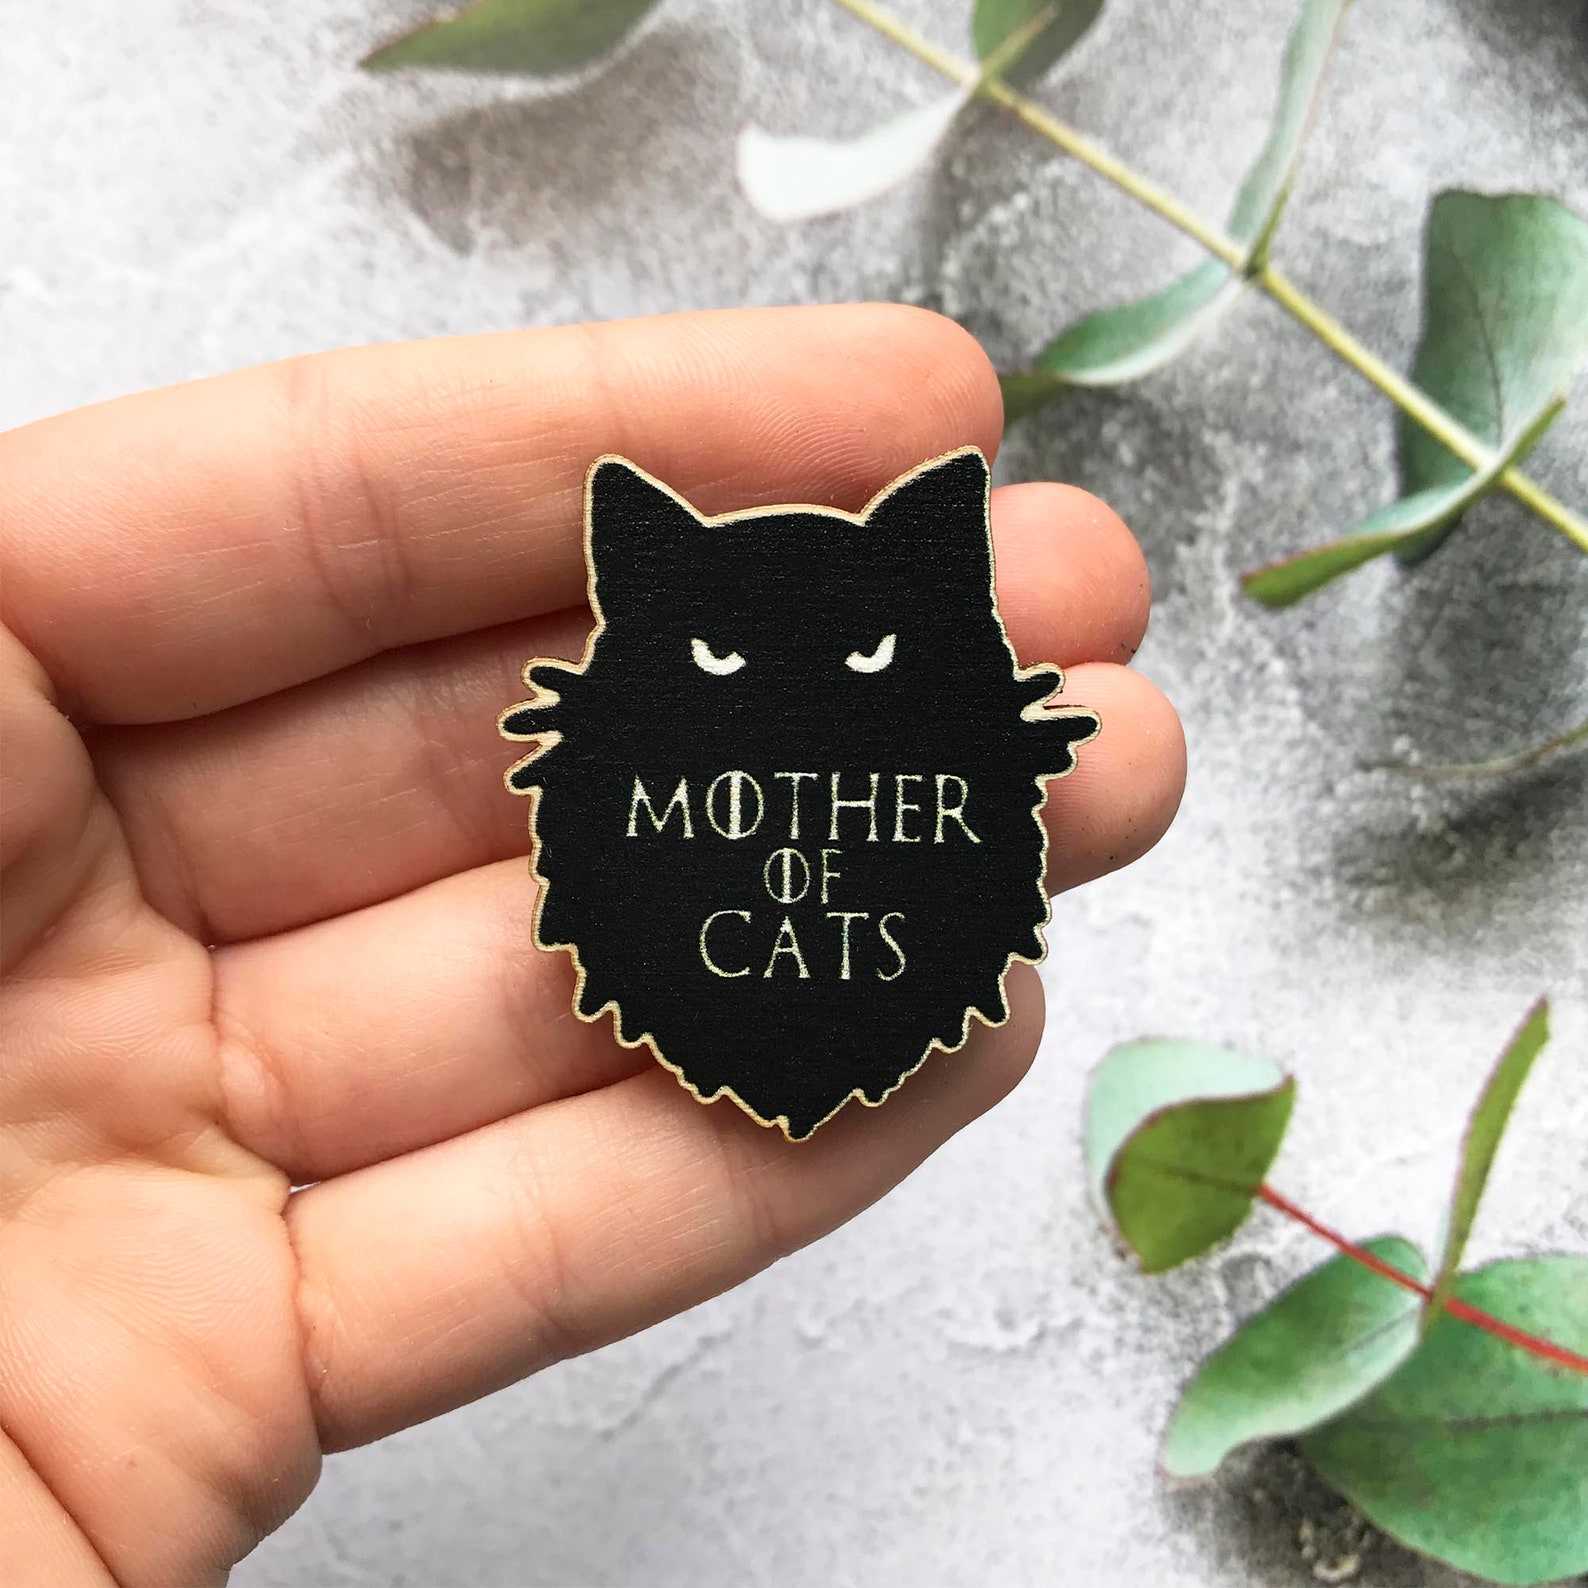 Mother of Cats Wooden Brooch